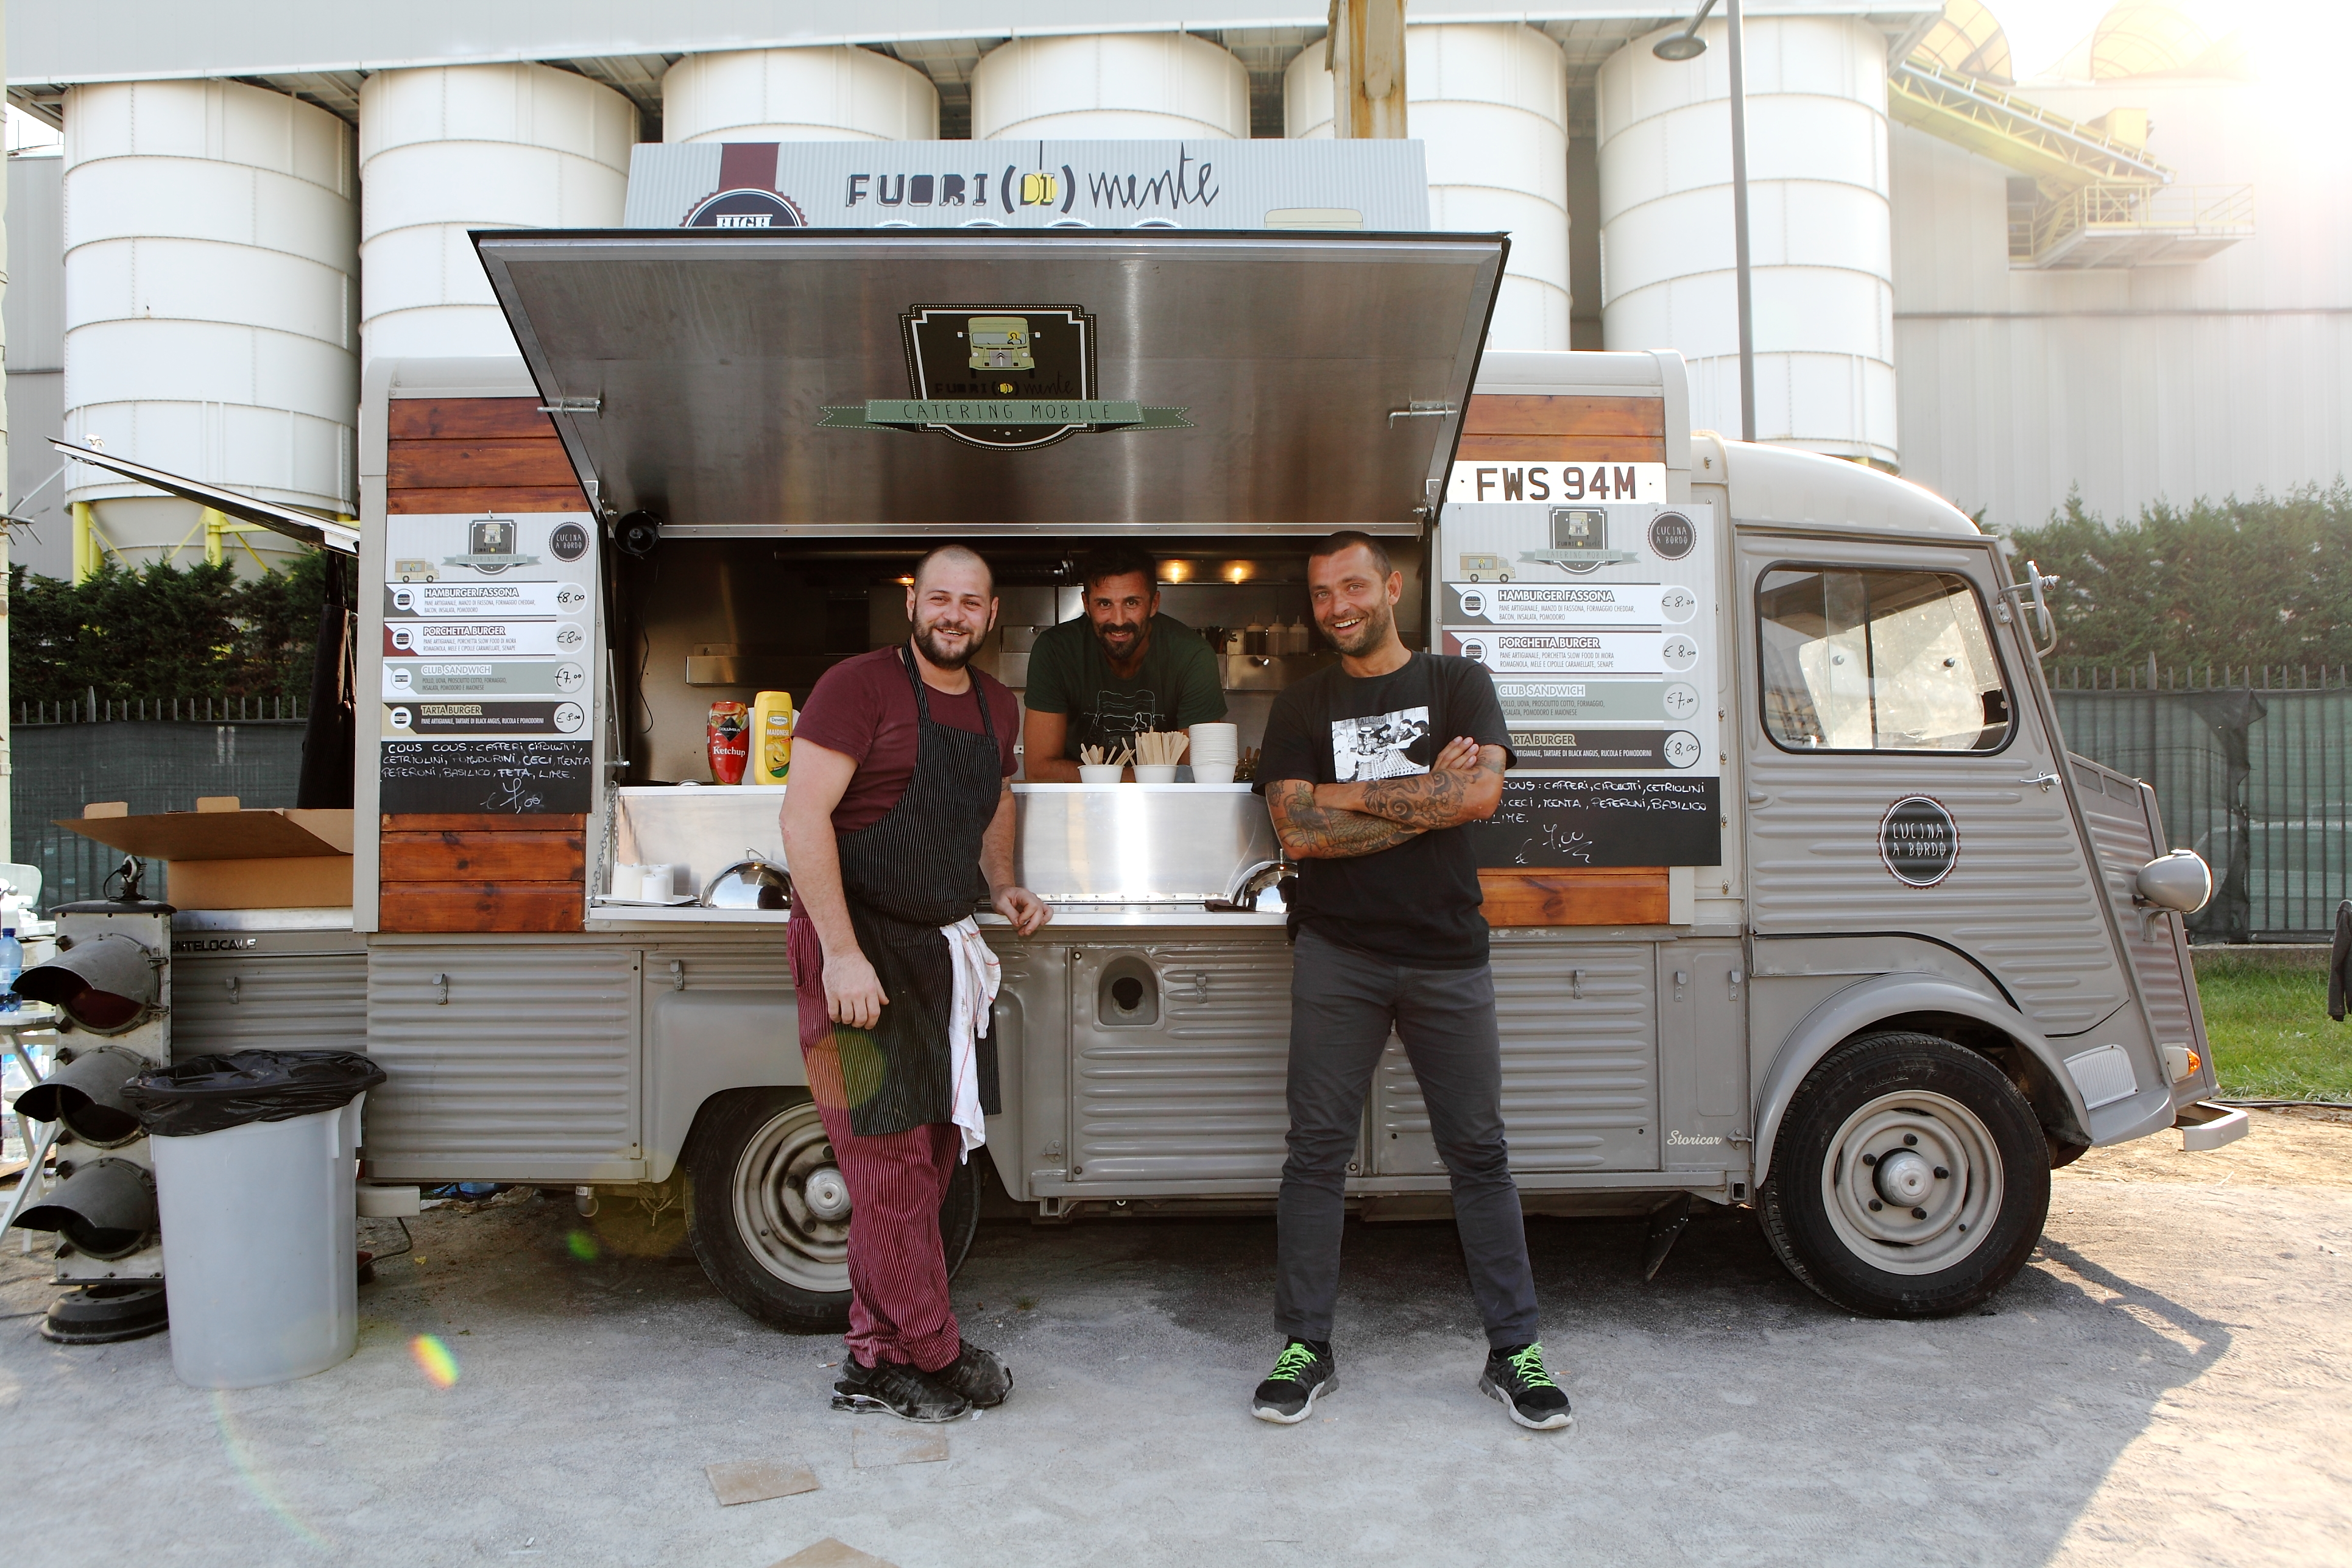 Streeat food truck festival 2015 27 28 e 29 marzo roma a for Food truck bar le duc